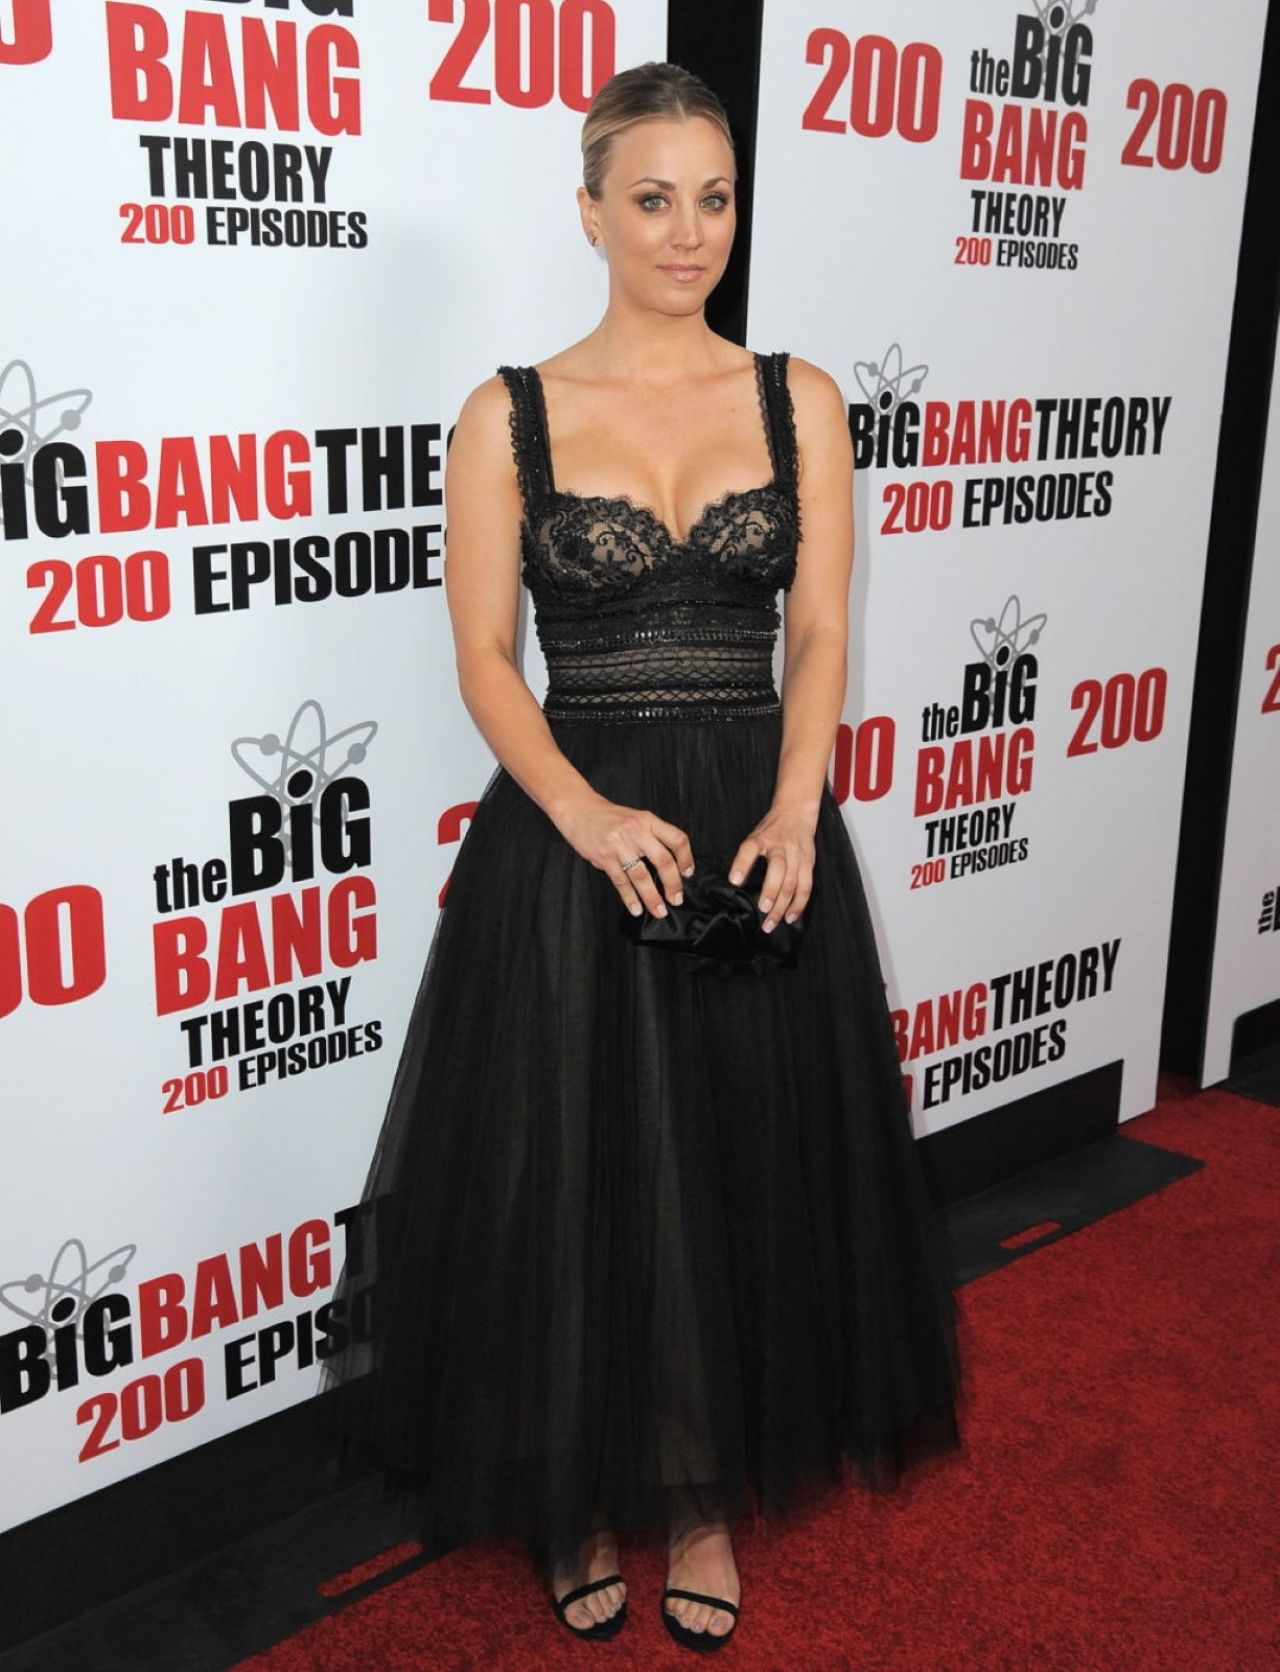 kaley-cuoco-cbs-s-the-big-bang-theory-celebrates-200th-episode-in-los-angeles-7